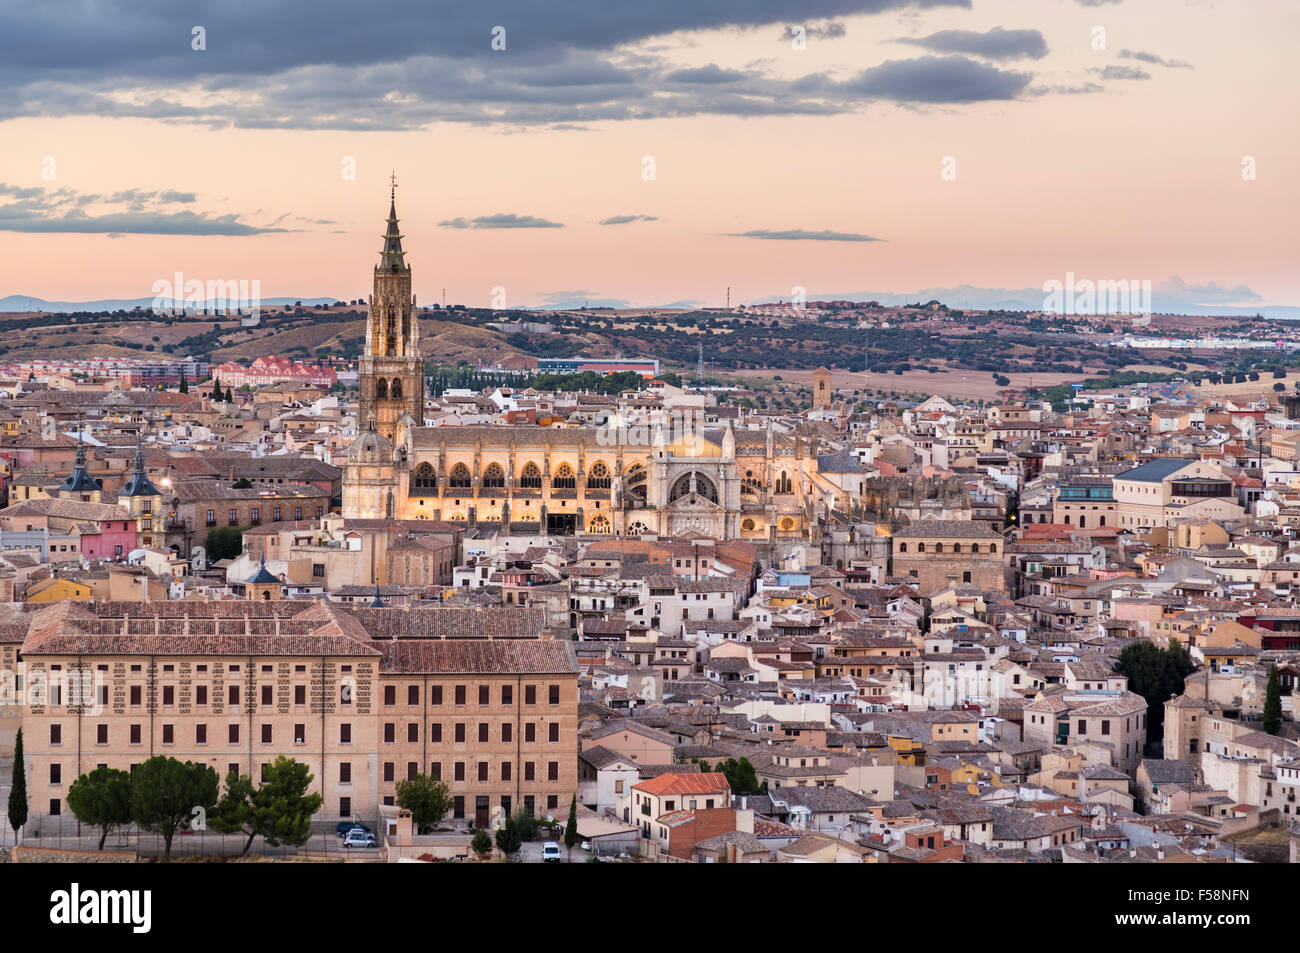 Toledo, Spain, Europe - Sunset cityscape at dusk with cathedral in the ancient city - Stock Image